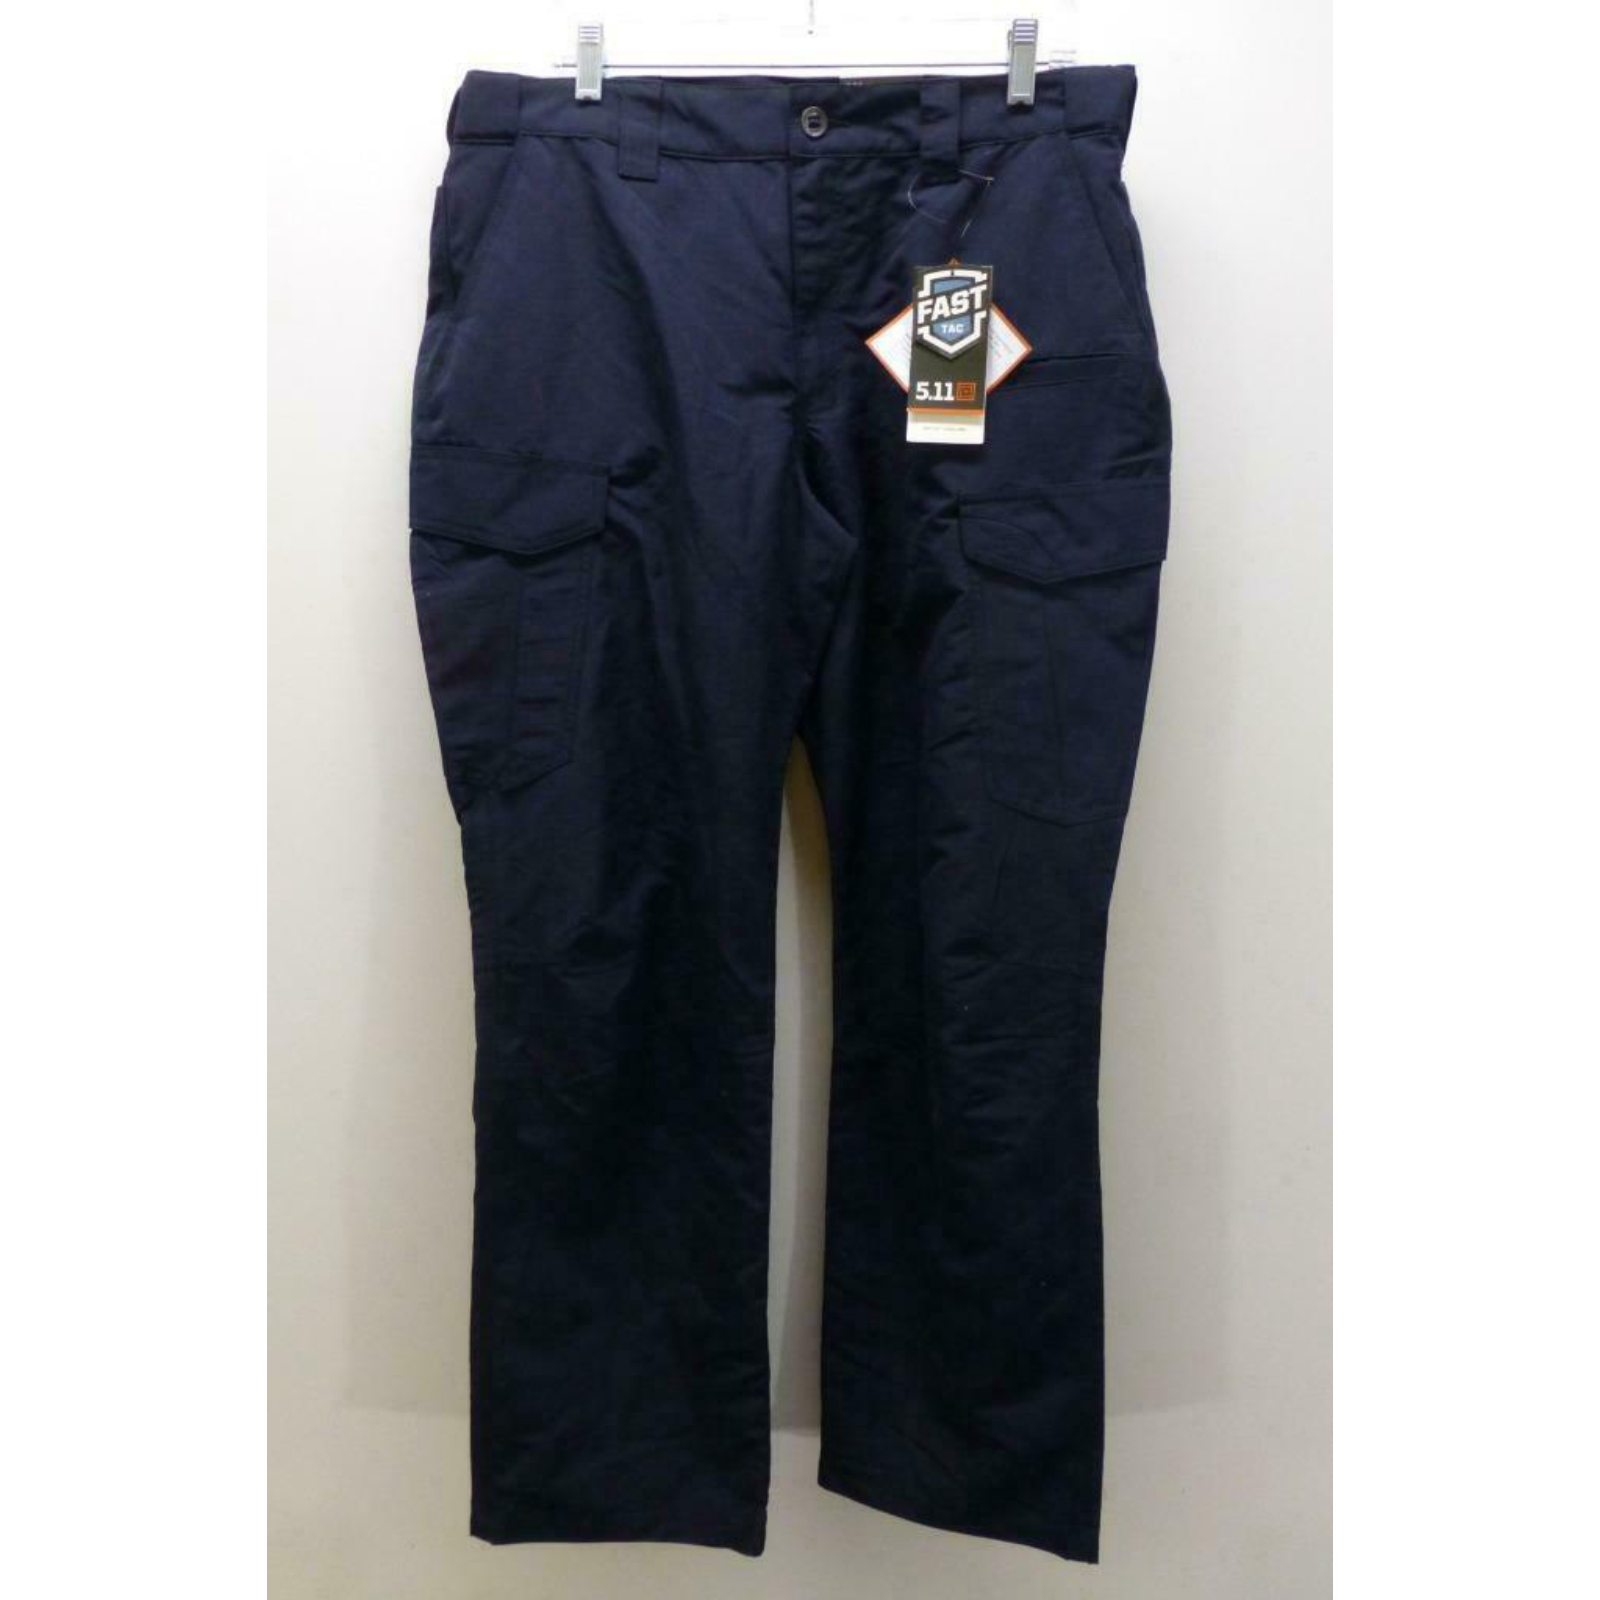 Product Image 1 - New 5.11 tactical Fast Tac